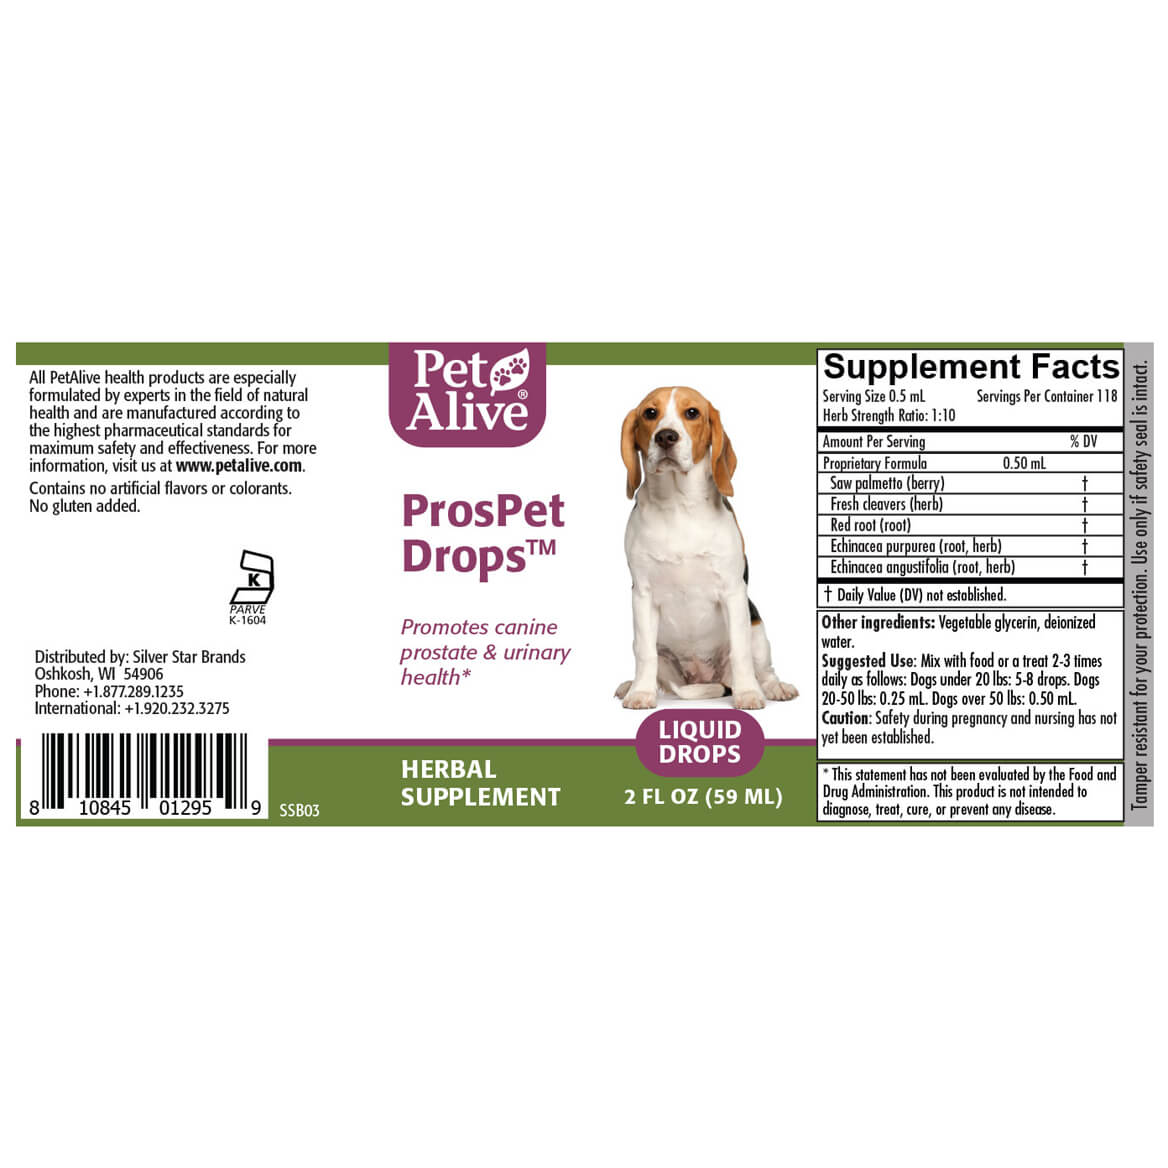 ProsPet Drops™ for Canine Prostate Health-352012